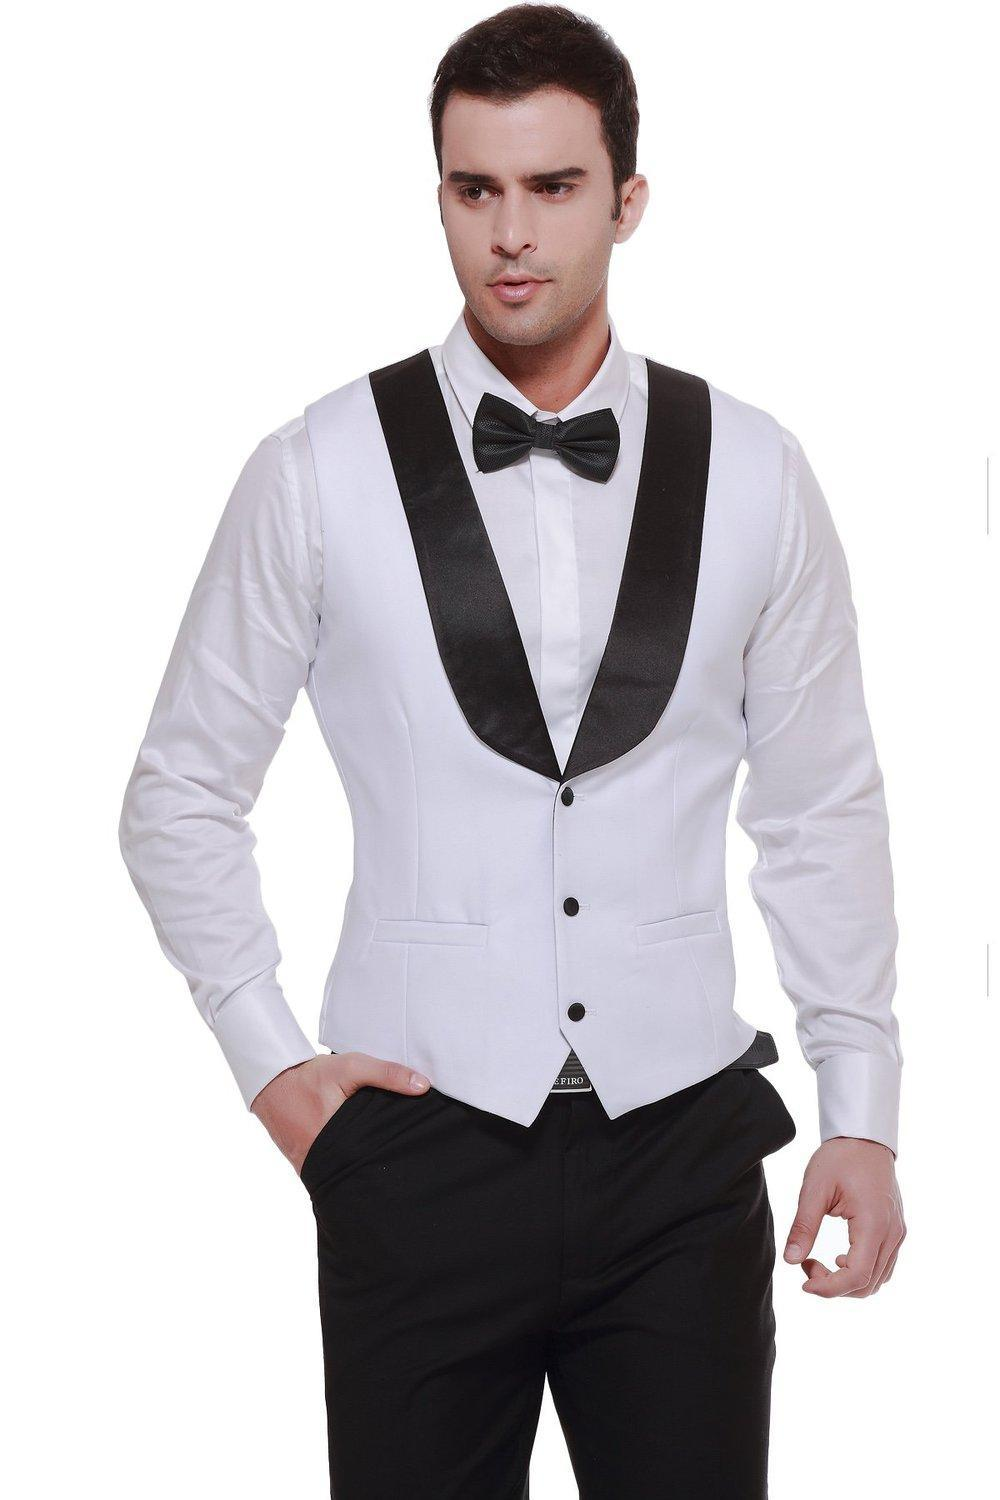 Formal White Men'S Waistcoat 2015 New Arrival Fashion Groom Vests ...